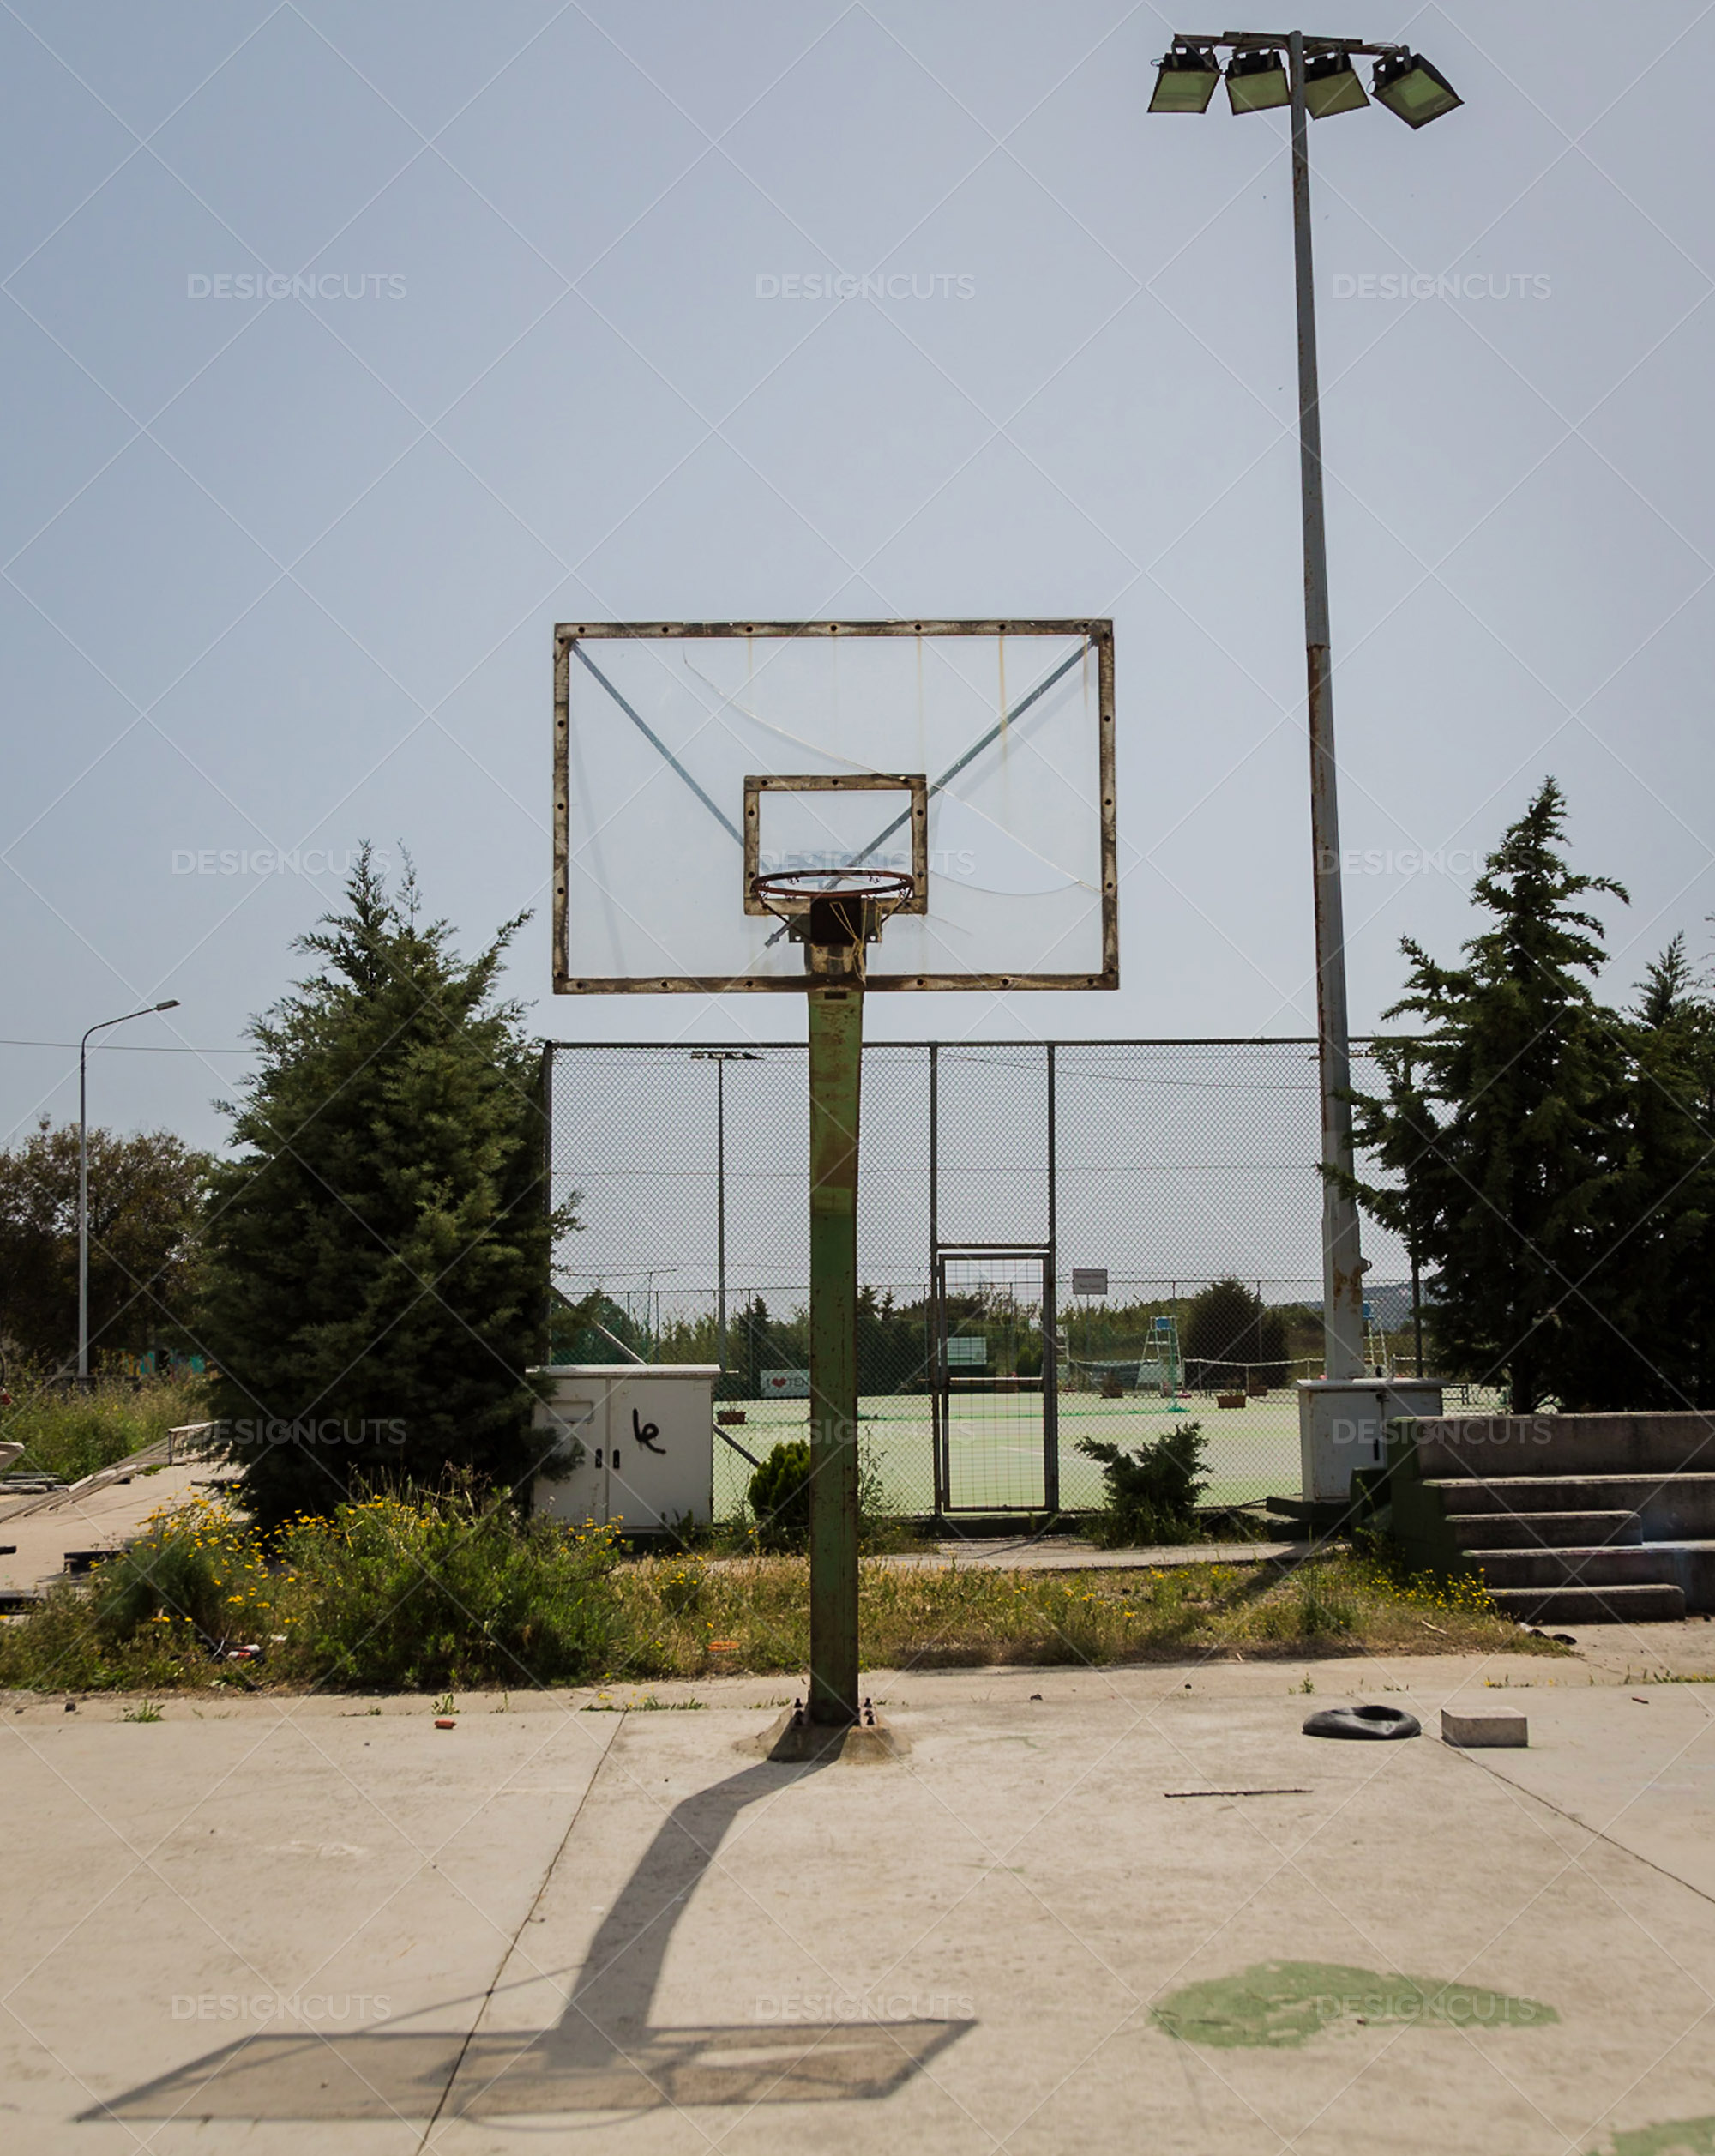 Basketball Hoop And It's Shadow On A Court